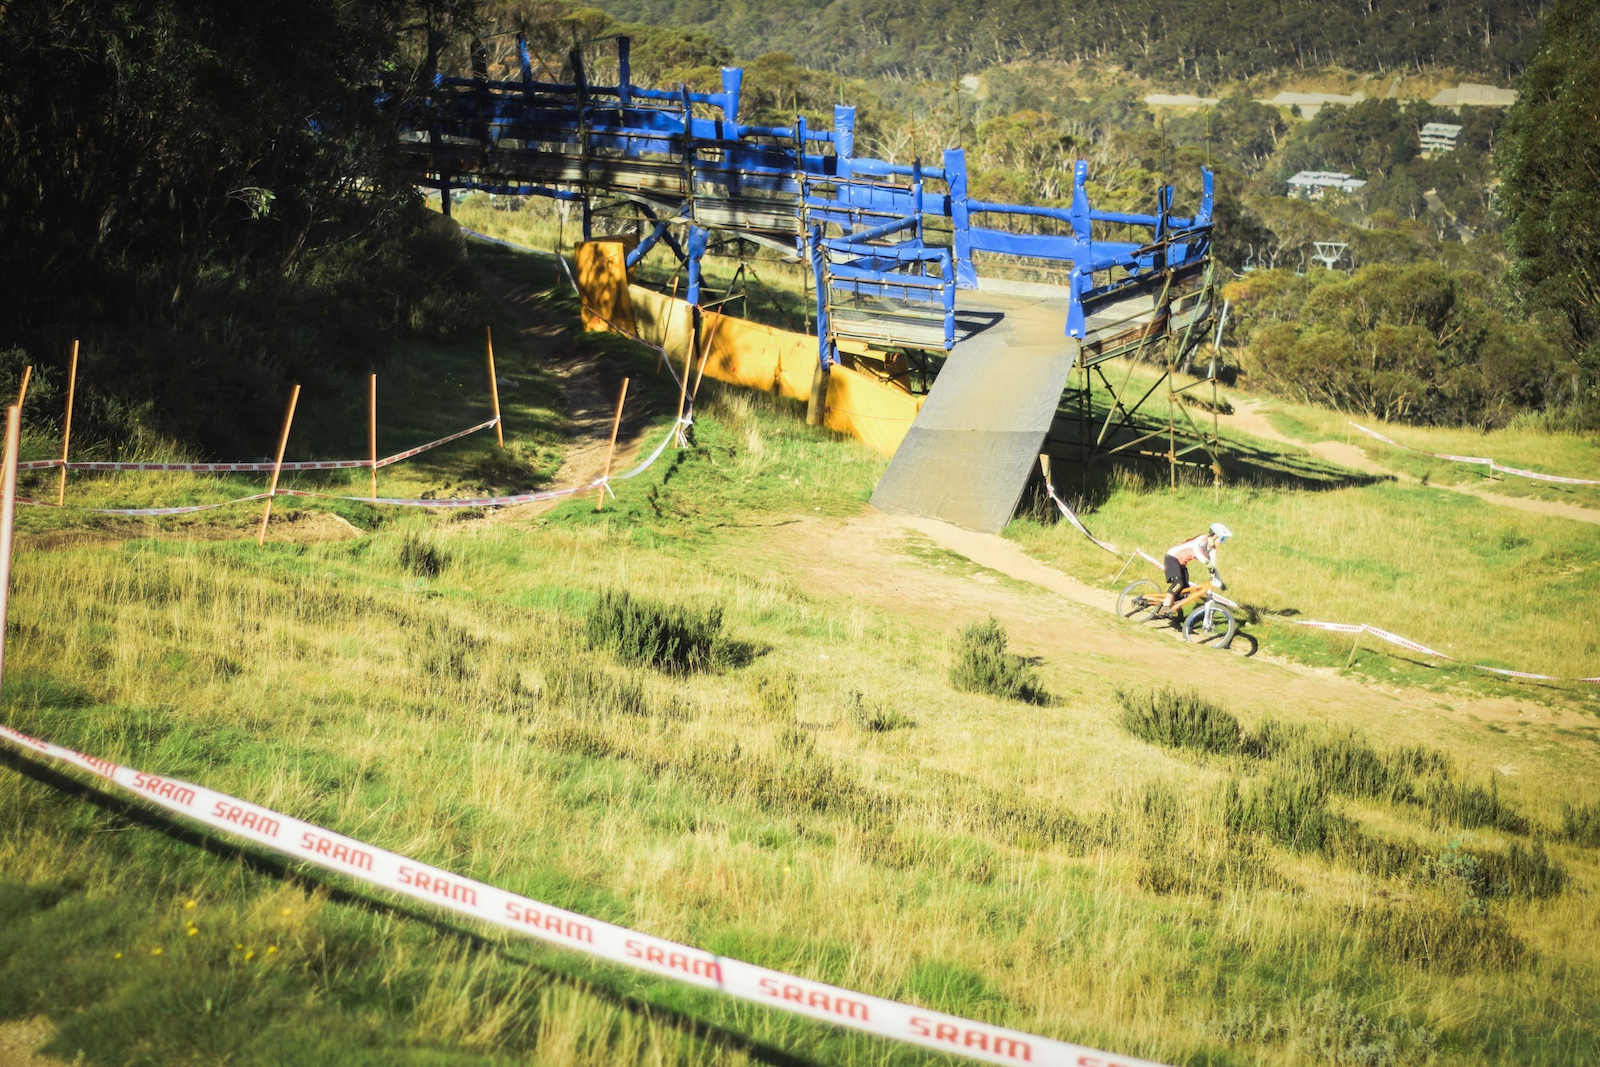 Ellie Smith took out the win in both the U17 s SuperFlow and U19 s Downhill Enduro Congrats